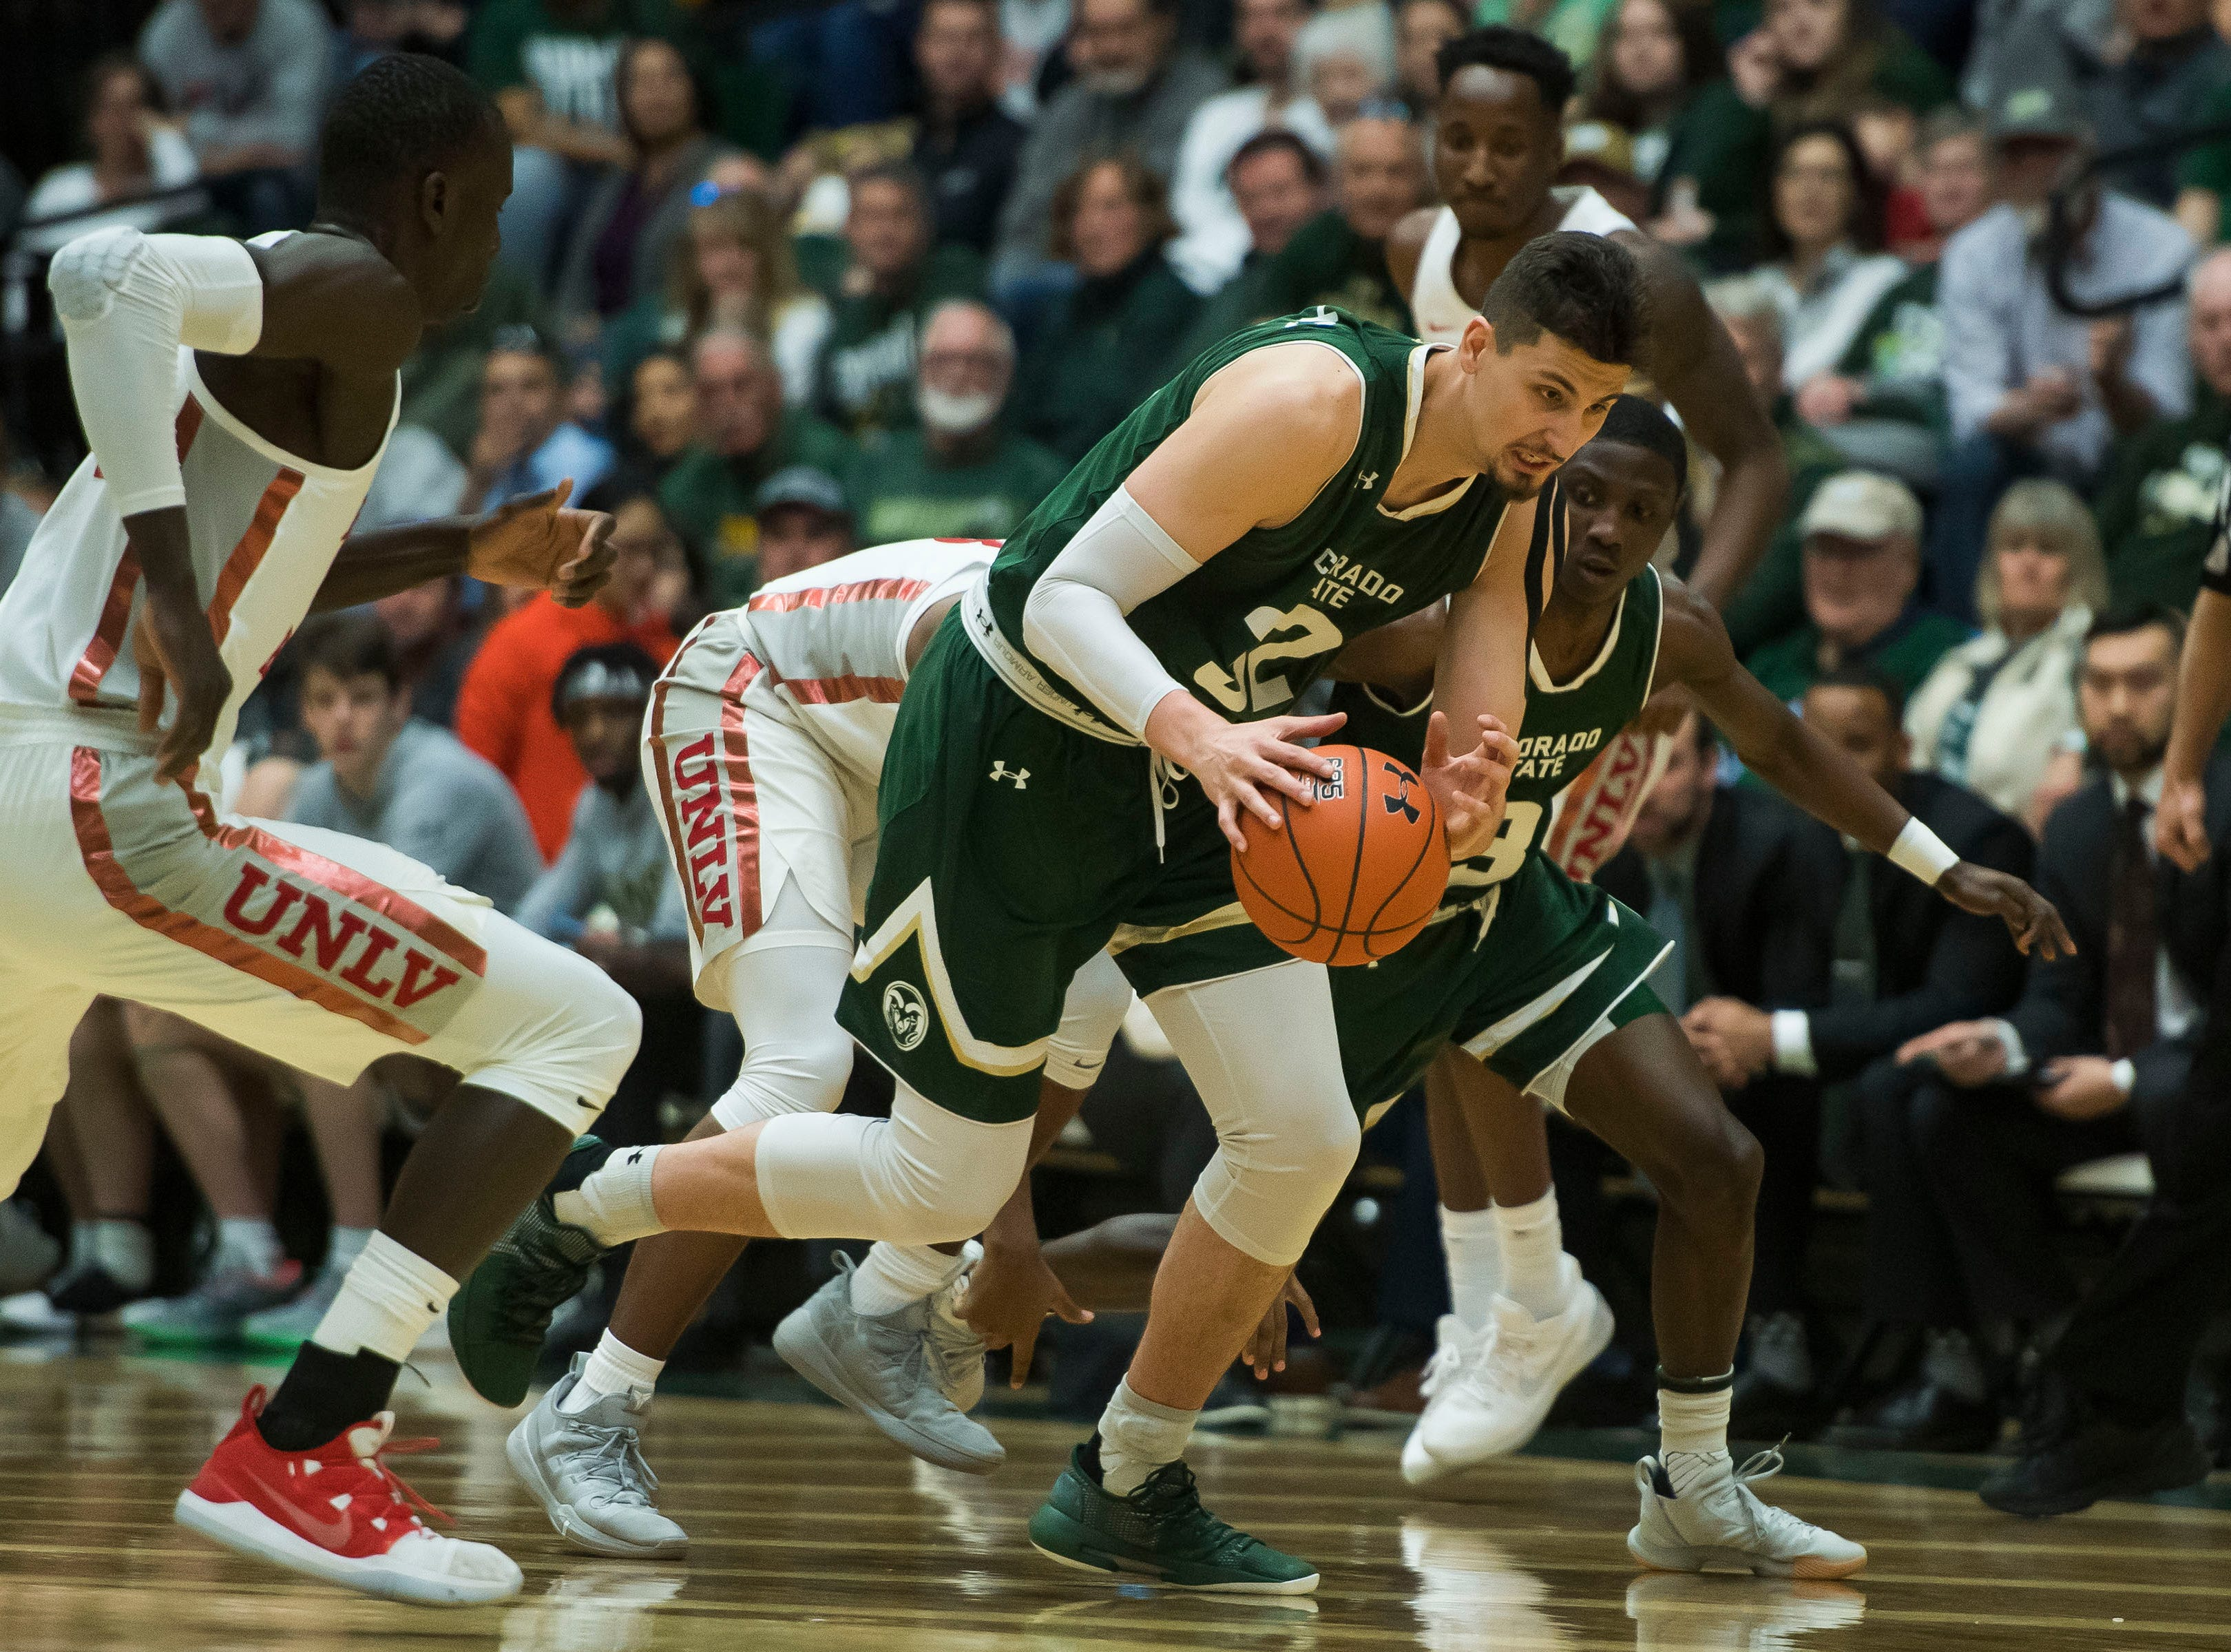 Colorado State University junior center Nico Carvacho (32) goes down-court after stealing the ball during a game against University of Nevada, Las Vegas on Saturday, March 9, 2019, at Moby Arena in Fort Collins, Colo.